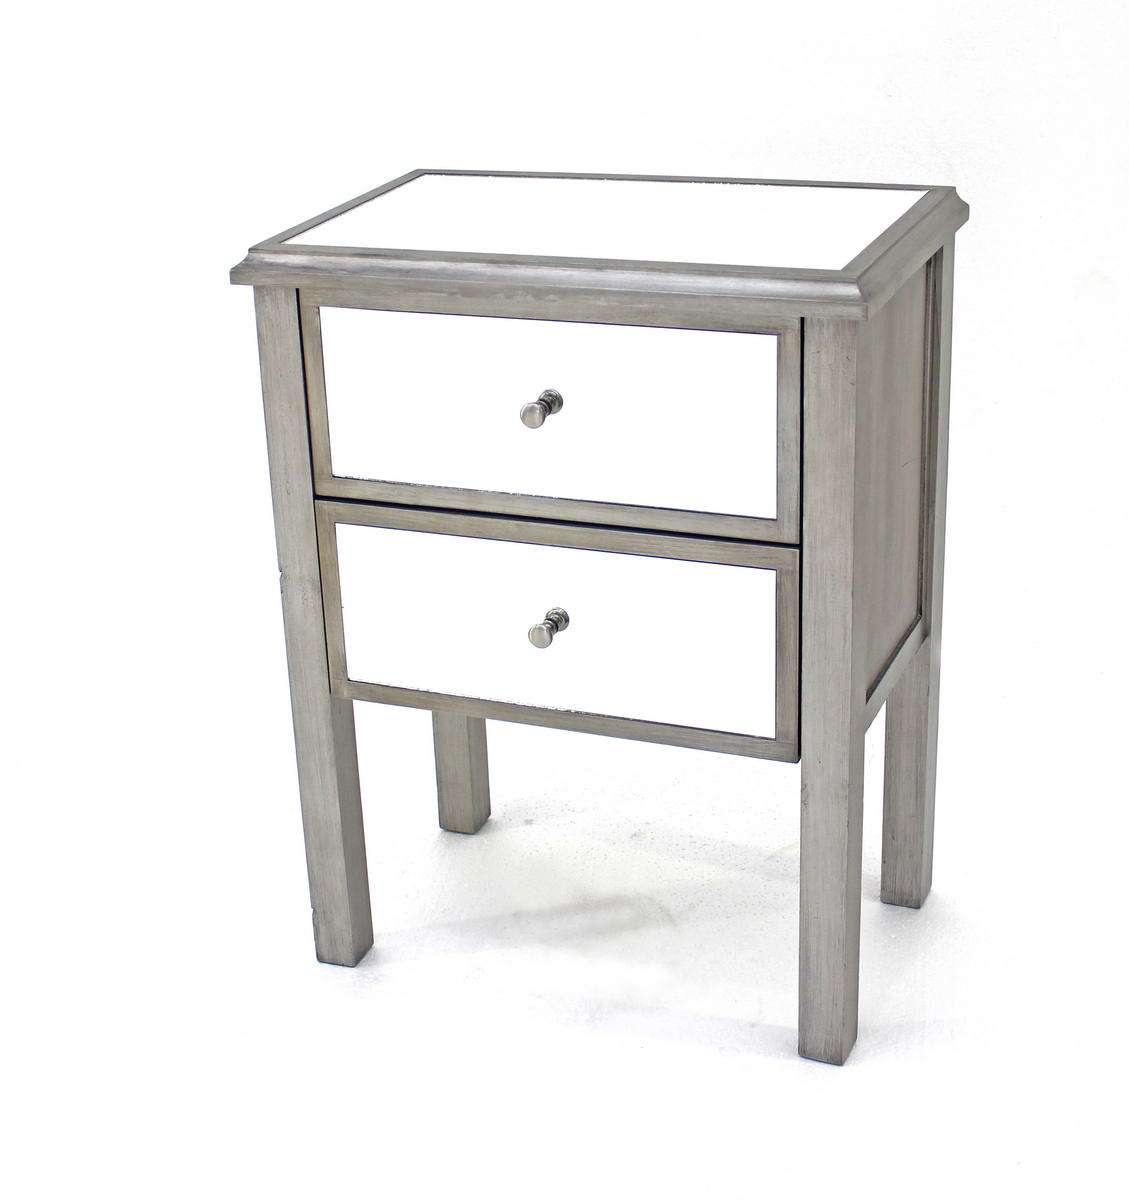 teton home white washed brown wood drawer accent table with mirror whitewash accents antique side marble top shabby chic bookcase making end tables clearance kitchen chairs old